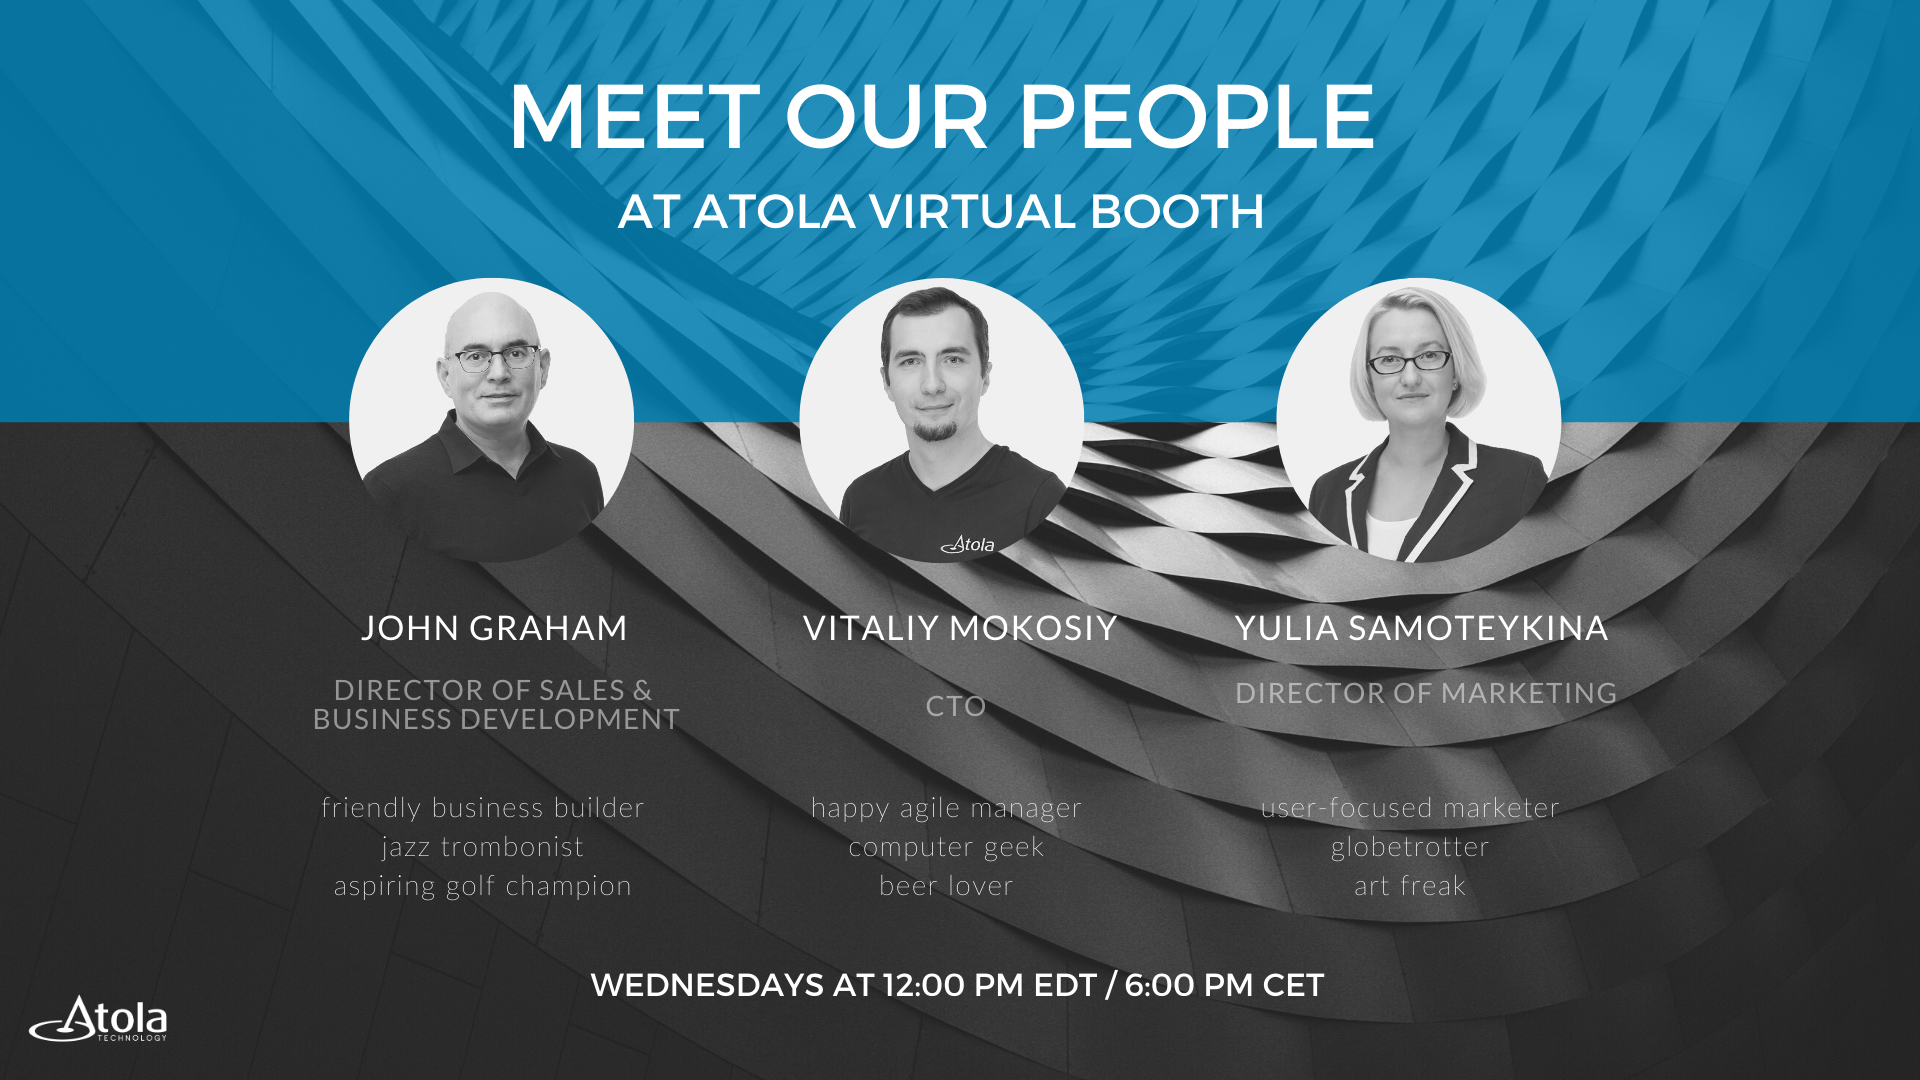 atola virtual booth for Digital Forensics Expert Group